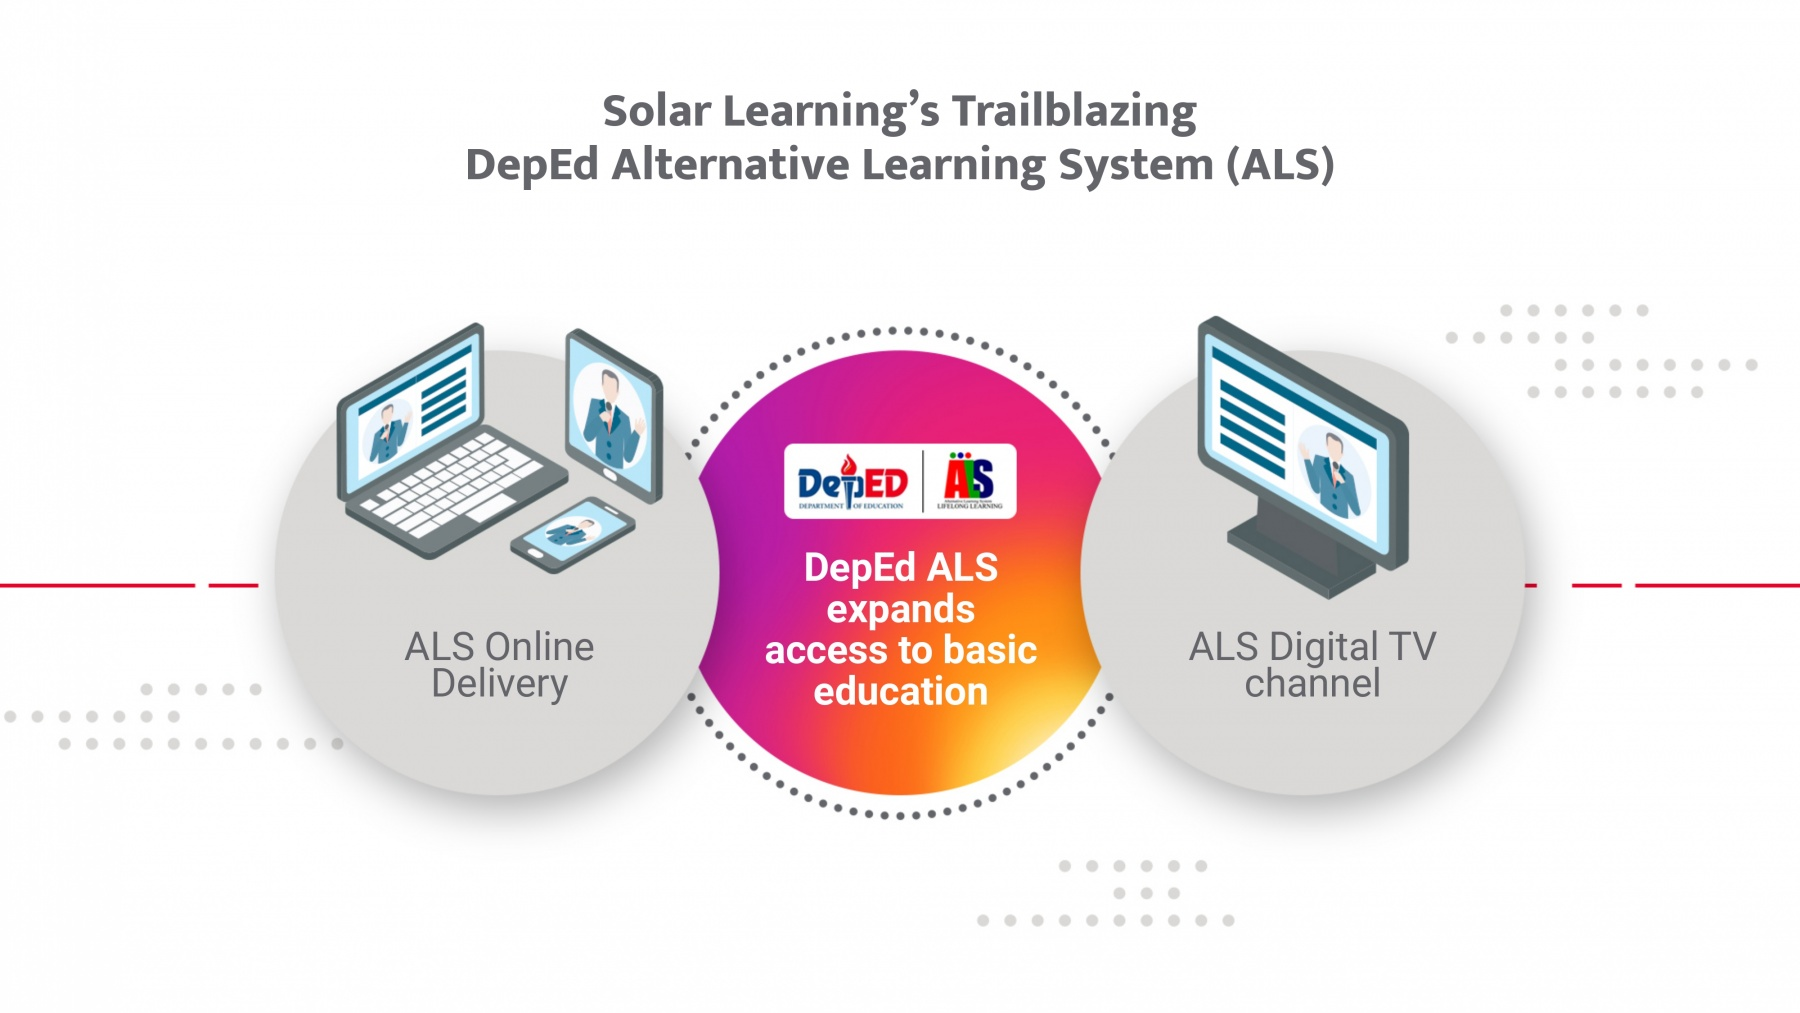 solar-learning_page-0003